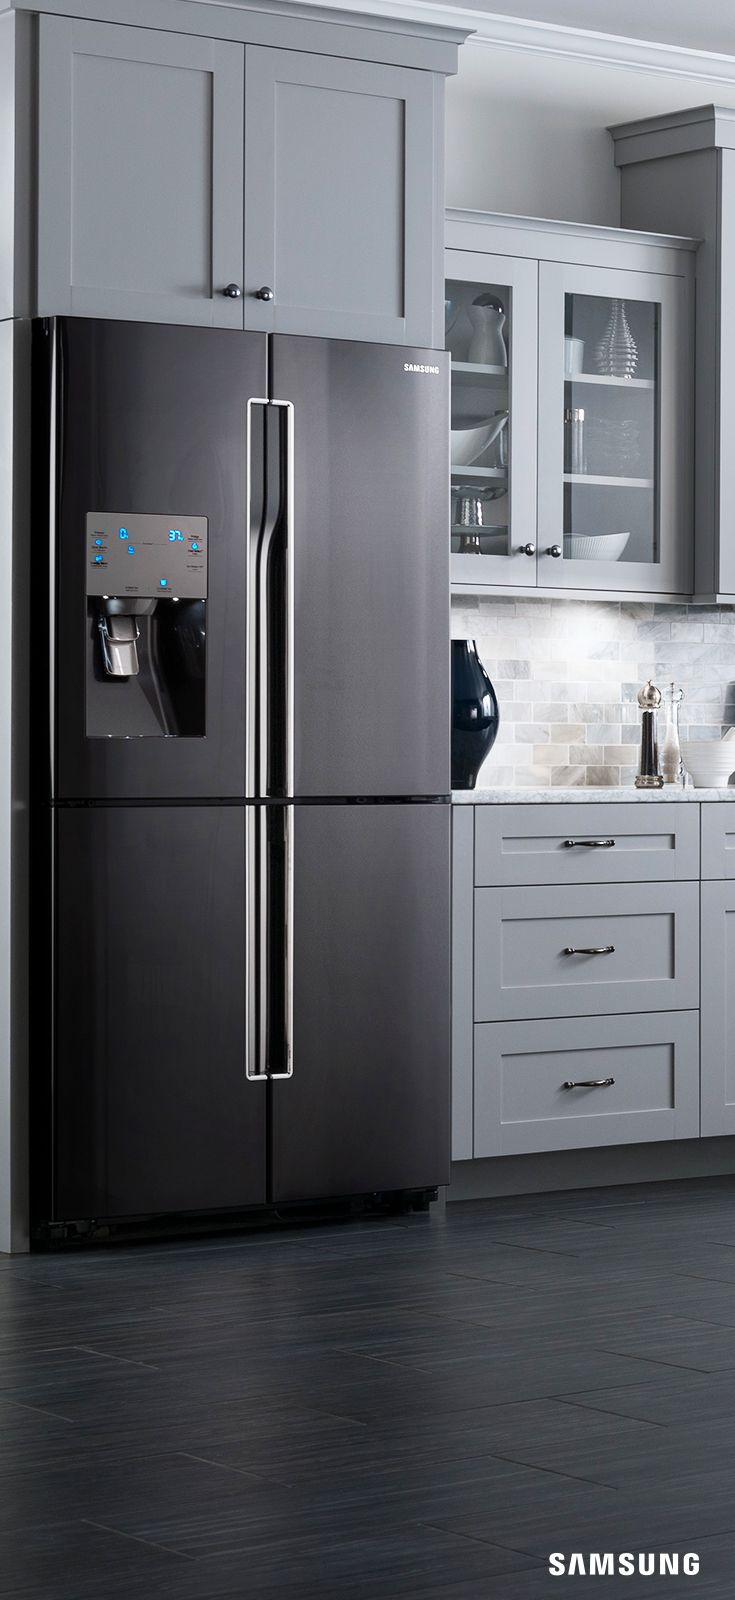 Uncategorized Kitchen Appliance Cabinet best 25 kitchen black appliances ideas on pinterest the next thing in inspiration is samsung stainless steel 4 door flex grey cabinetskitchen cabinetsrefrigerator freezerre